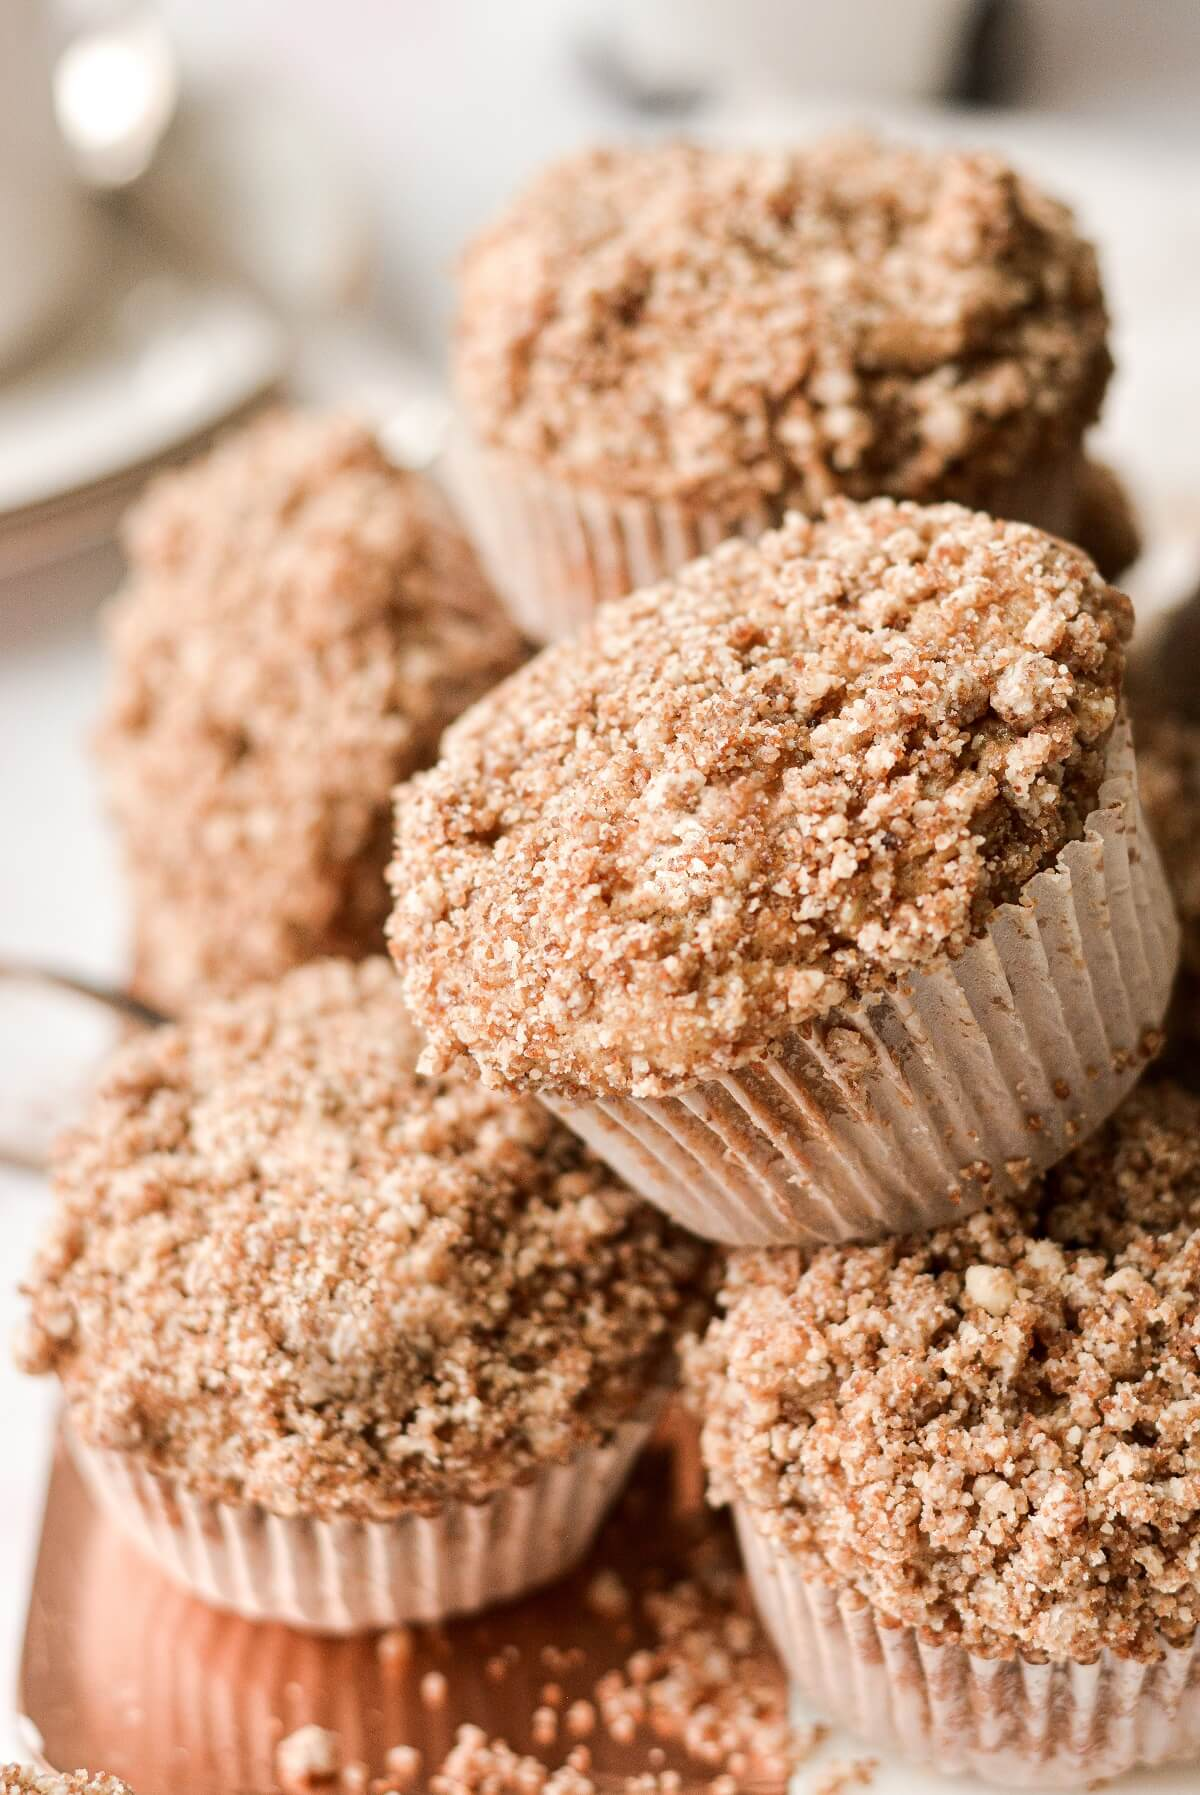 Apple spice muffins with crumb topping on a serving board.